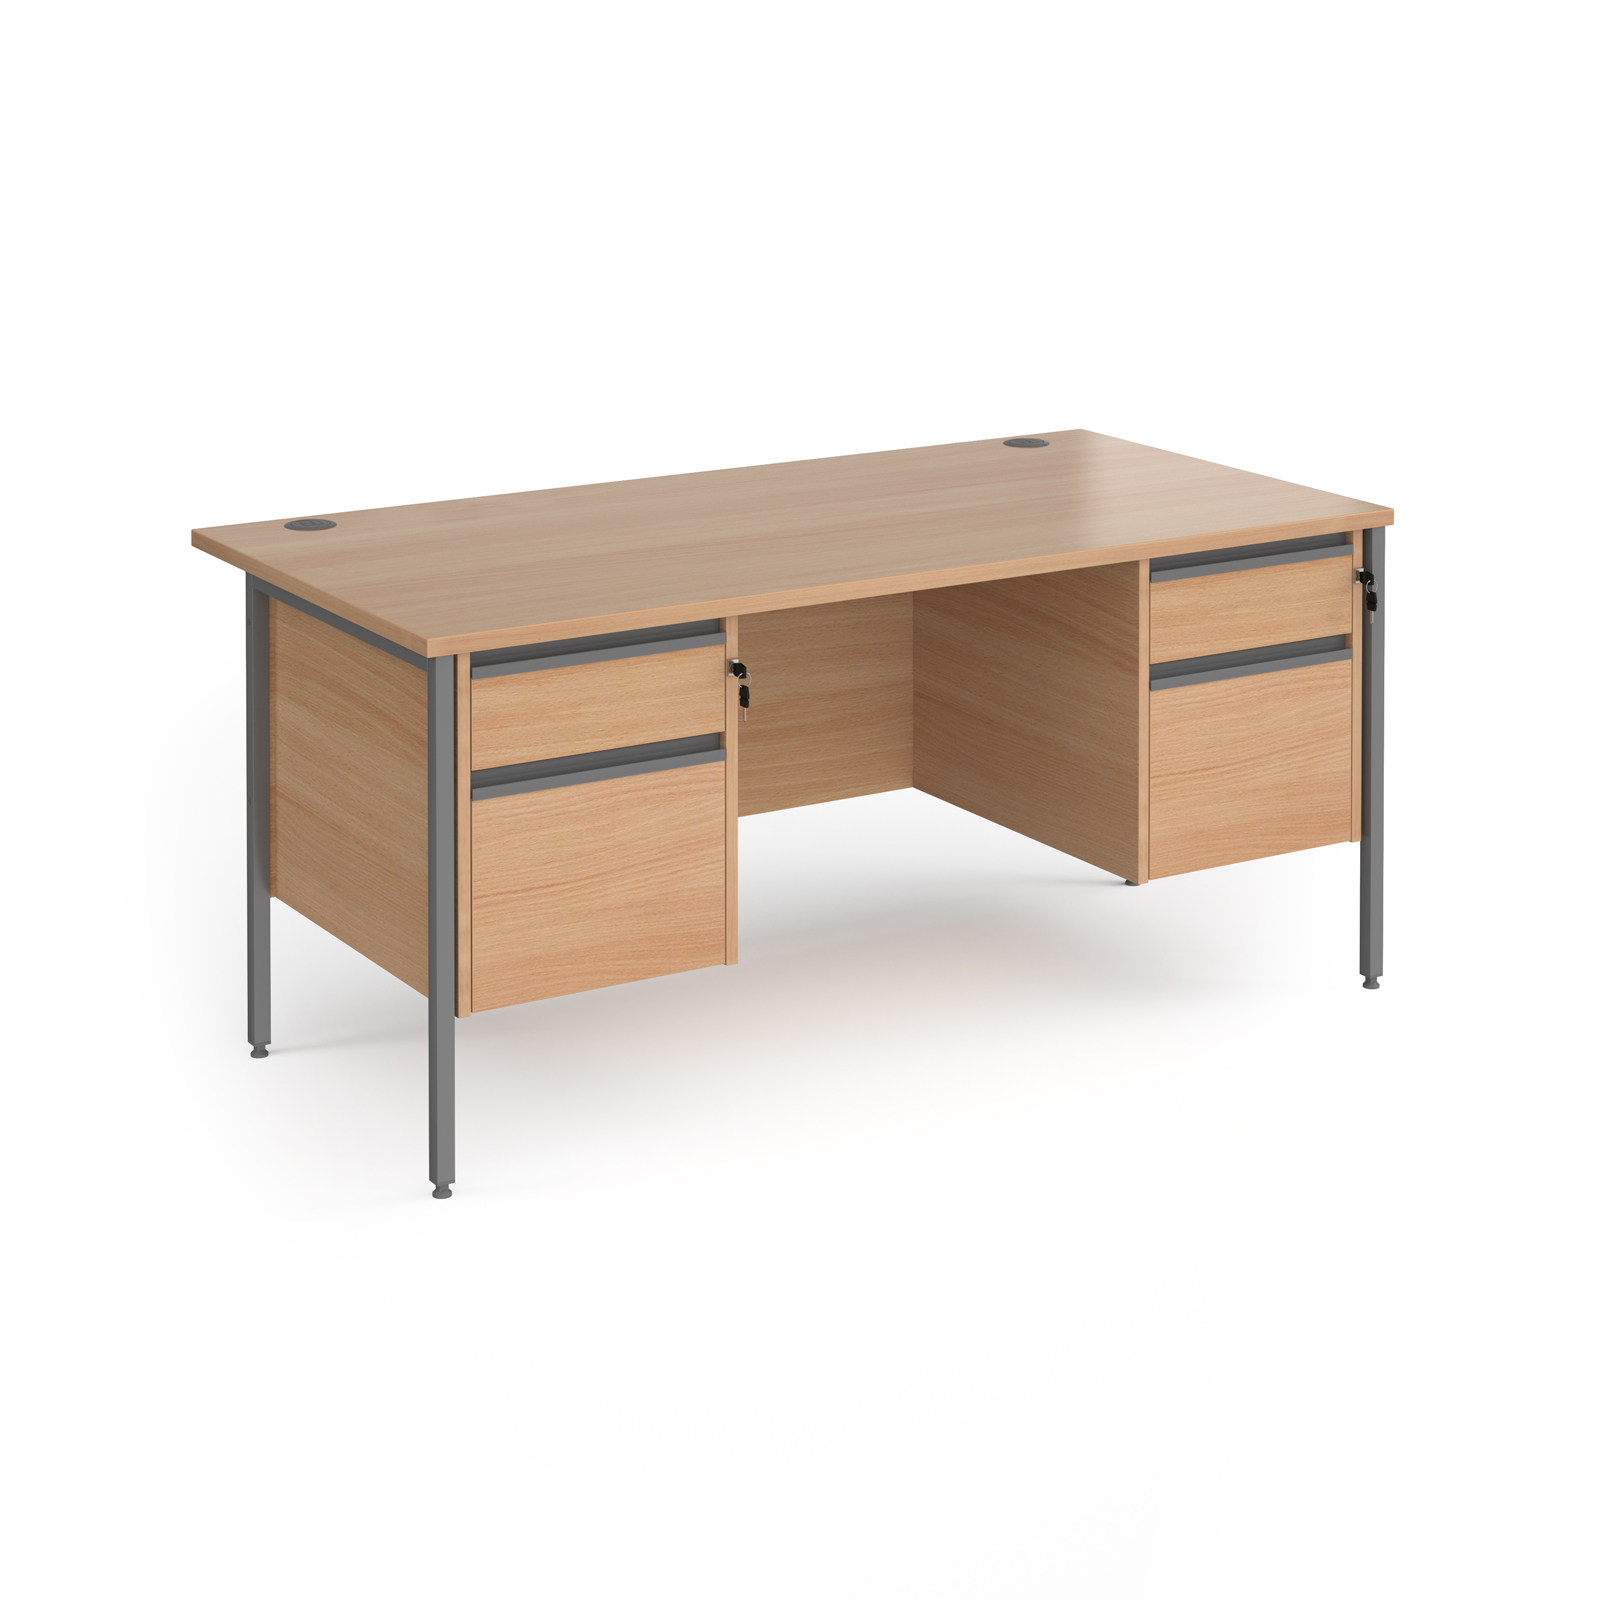 Rectangular Desks Contract 25 H-Frame straight desk with 2 and 2 drawer peds